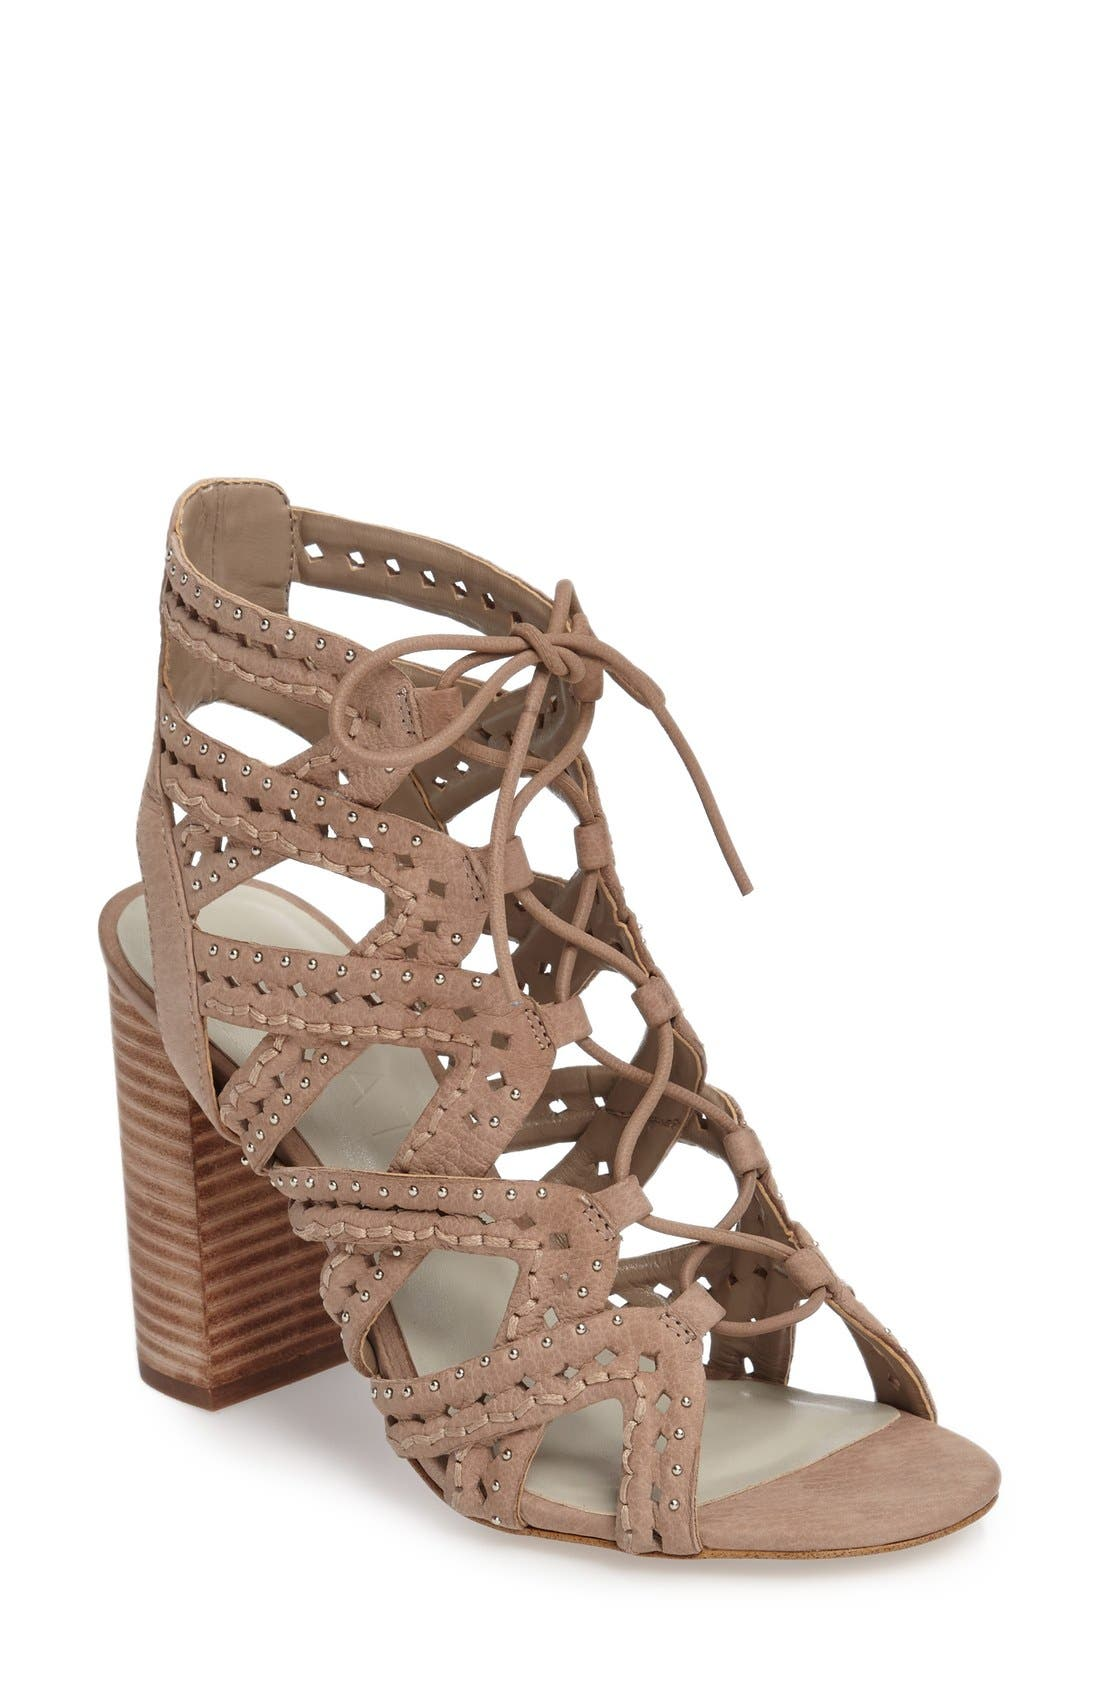 Kayley Sandal,                             Main thumbnail 1, color,                             Stone Nubuck Leather